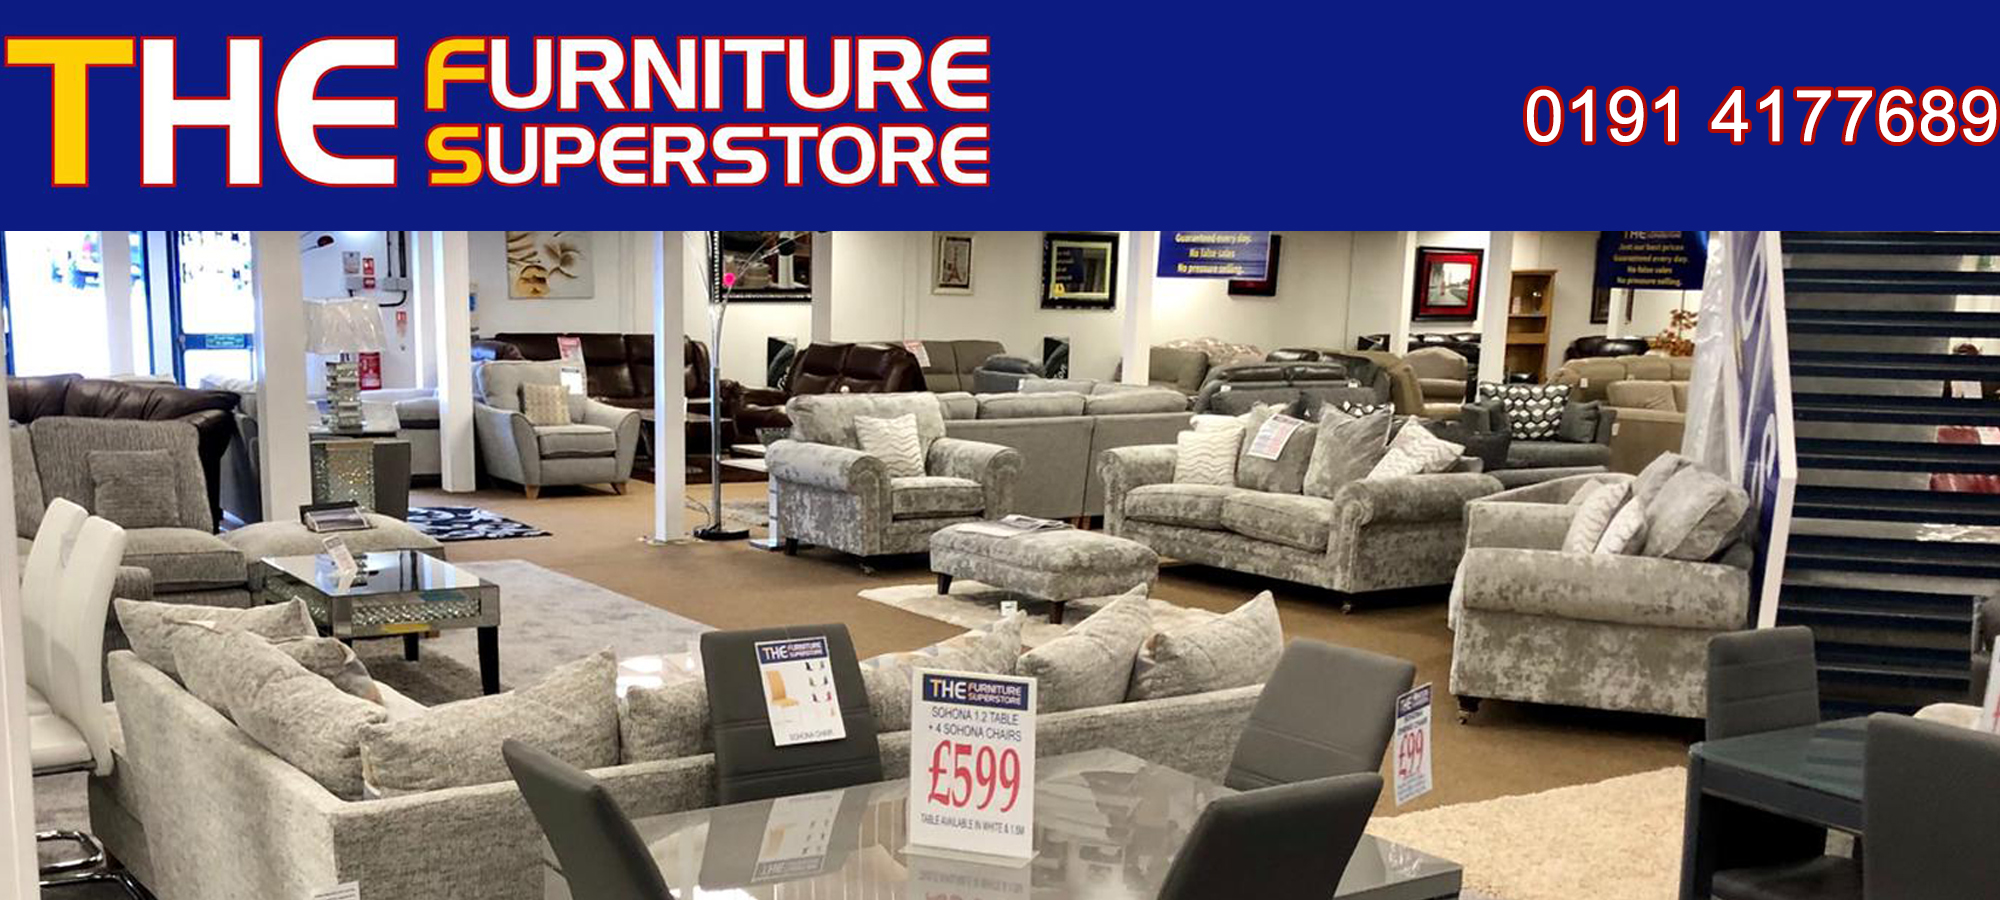 The Furniture Superstore